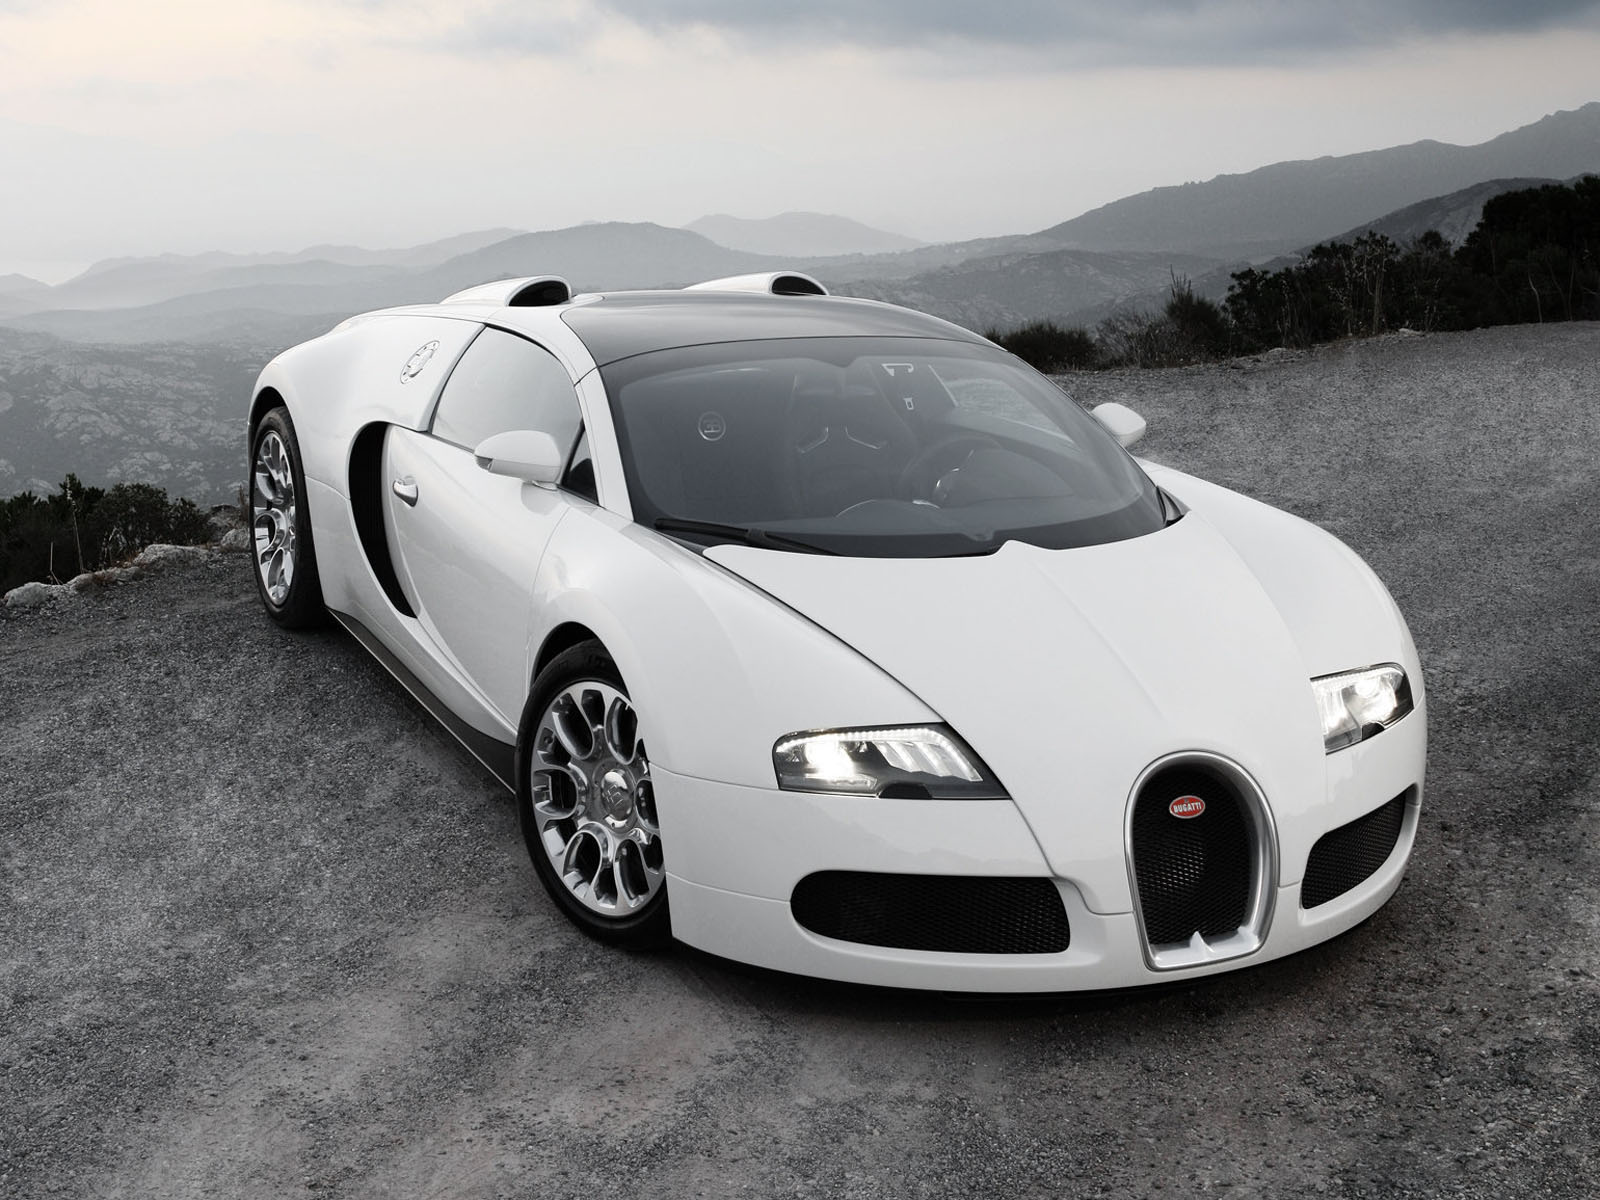 Hd Car wallpapers bugatti veyron wallpaper 1600x1200